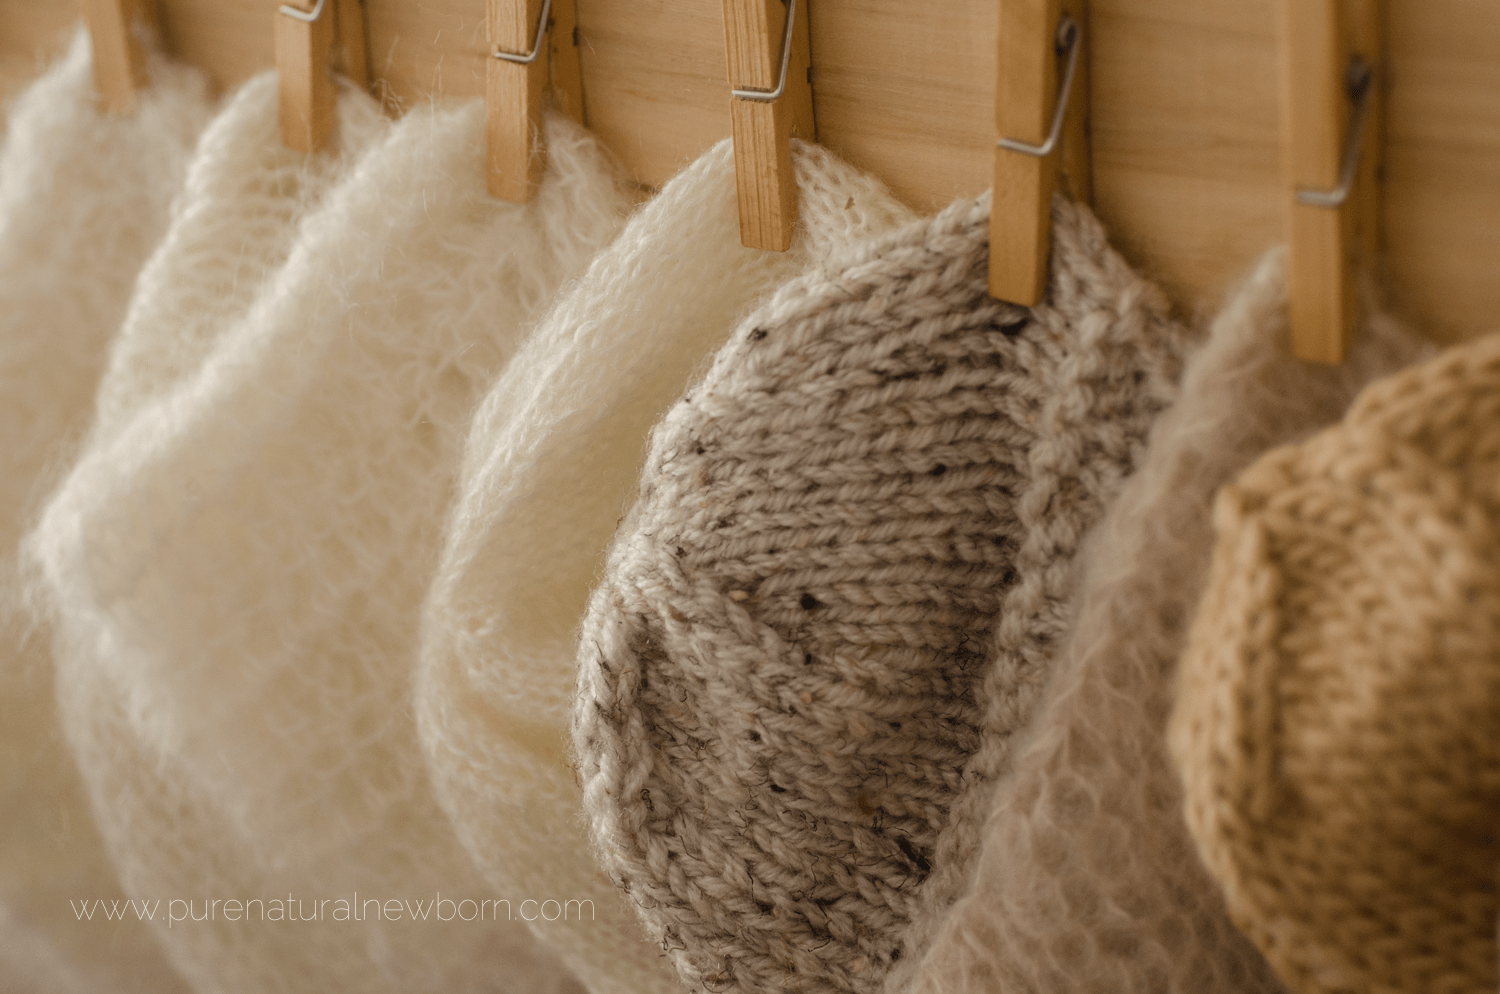 studio-decor-details-mohair-knit-bonnet-hat-baby-photography_STF0649